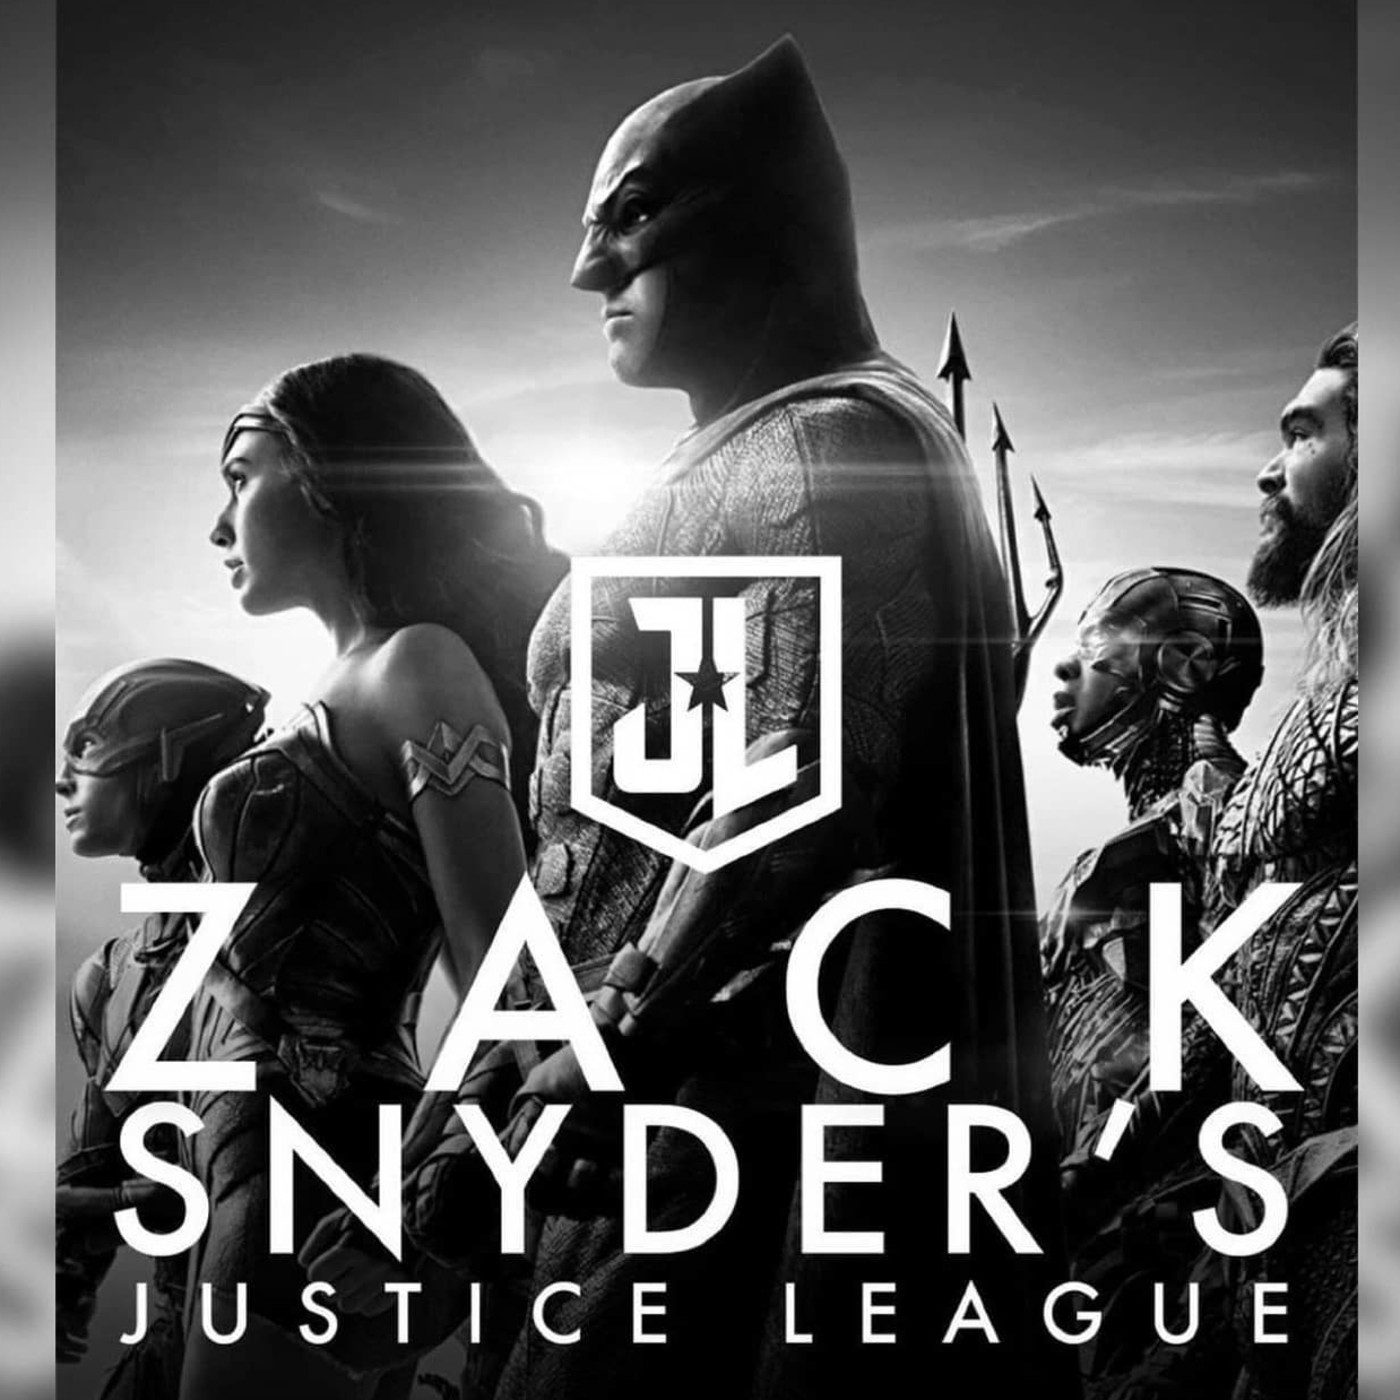 Justice League Snyder Cut - Charla, debate y opinión.